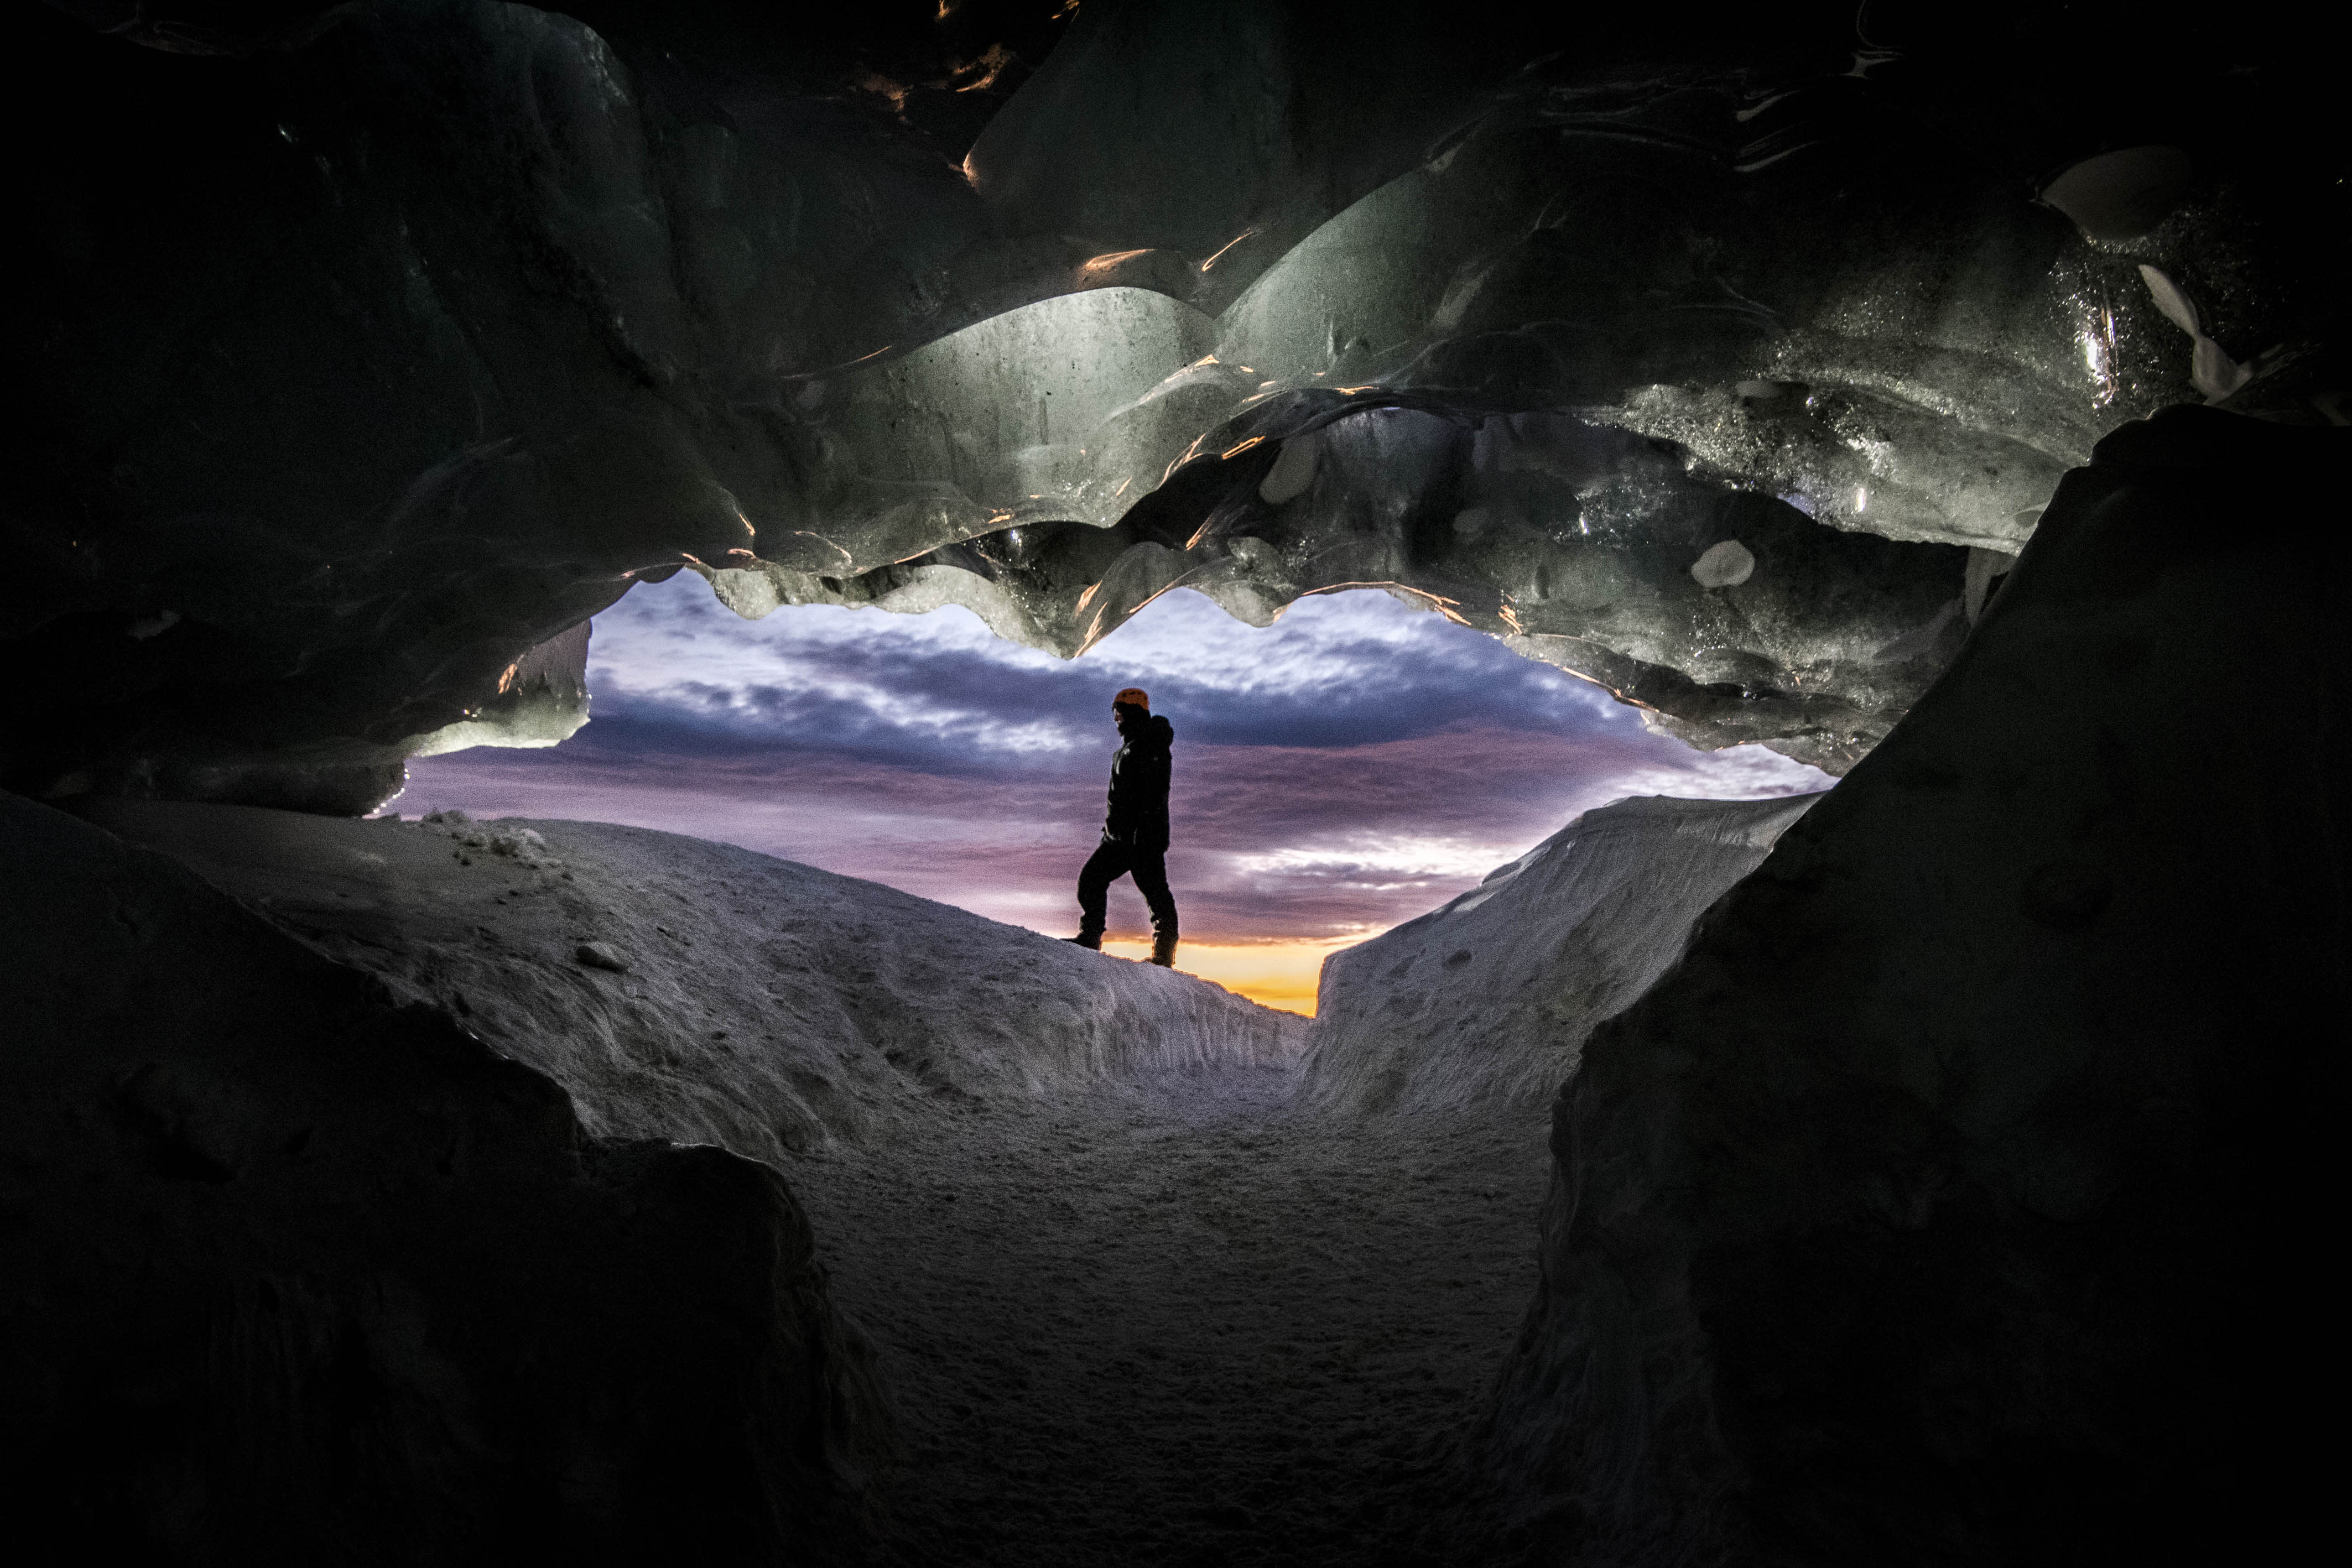 <p>The ice caves in the Vatnajokull National Park in Iceland, Nov. 29, 2017. (Photo: Matej Kriz/Caters News) </p>